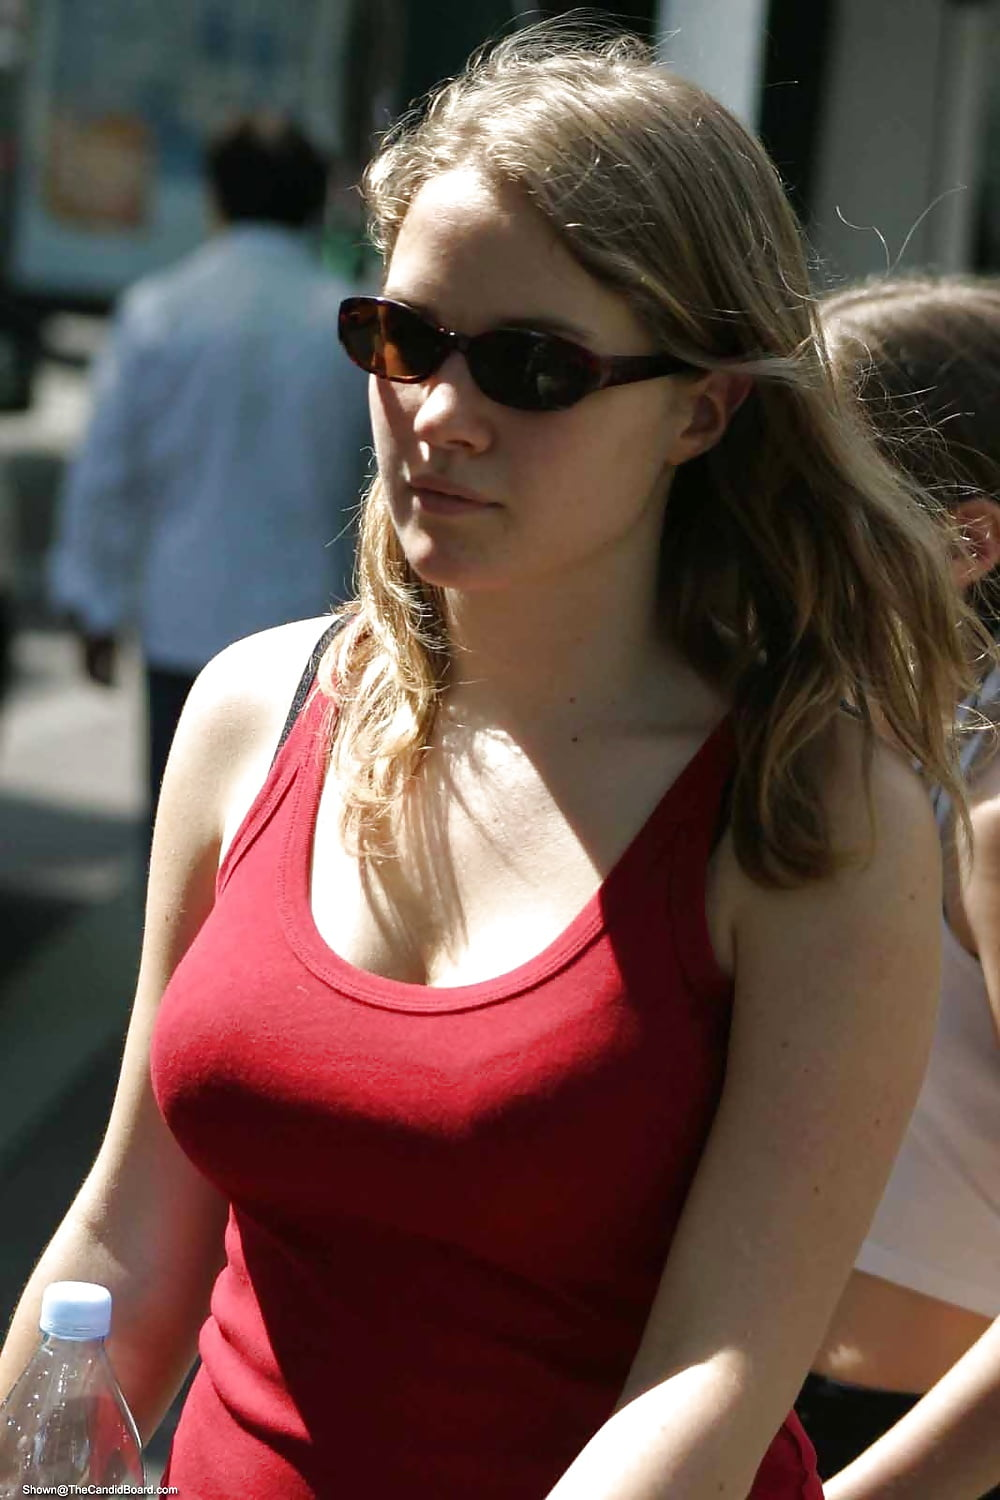 girls-candid-breasts-ass